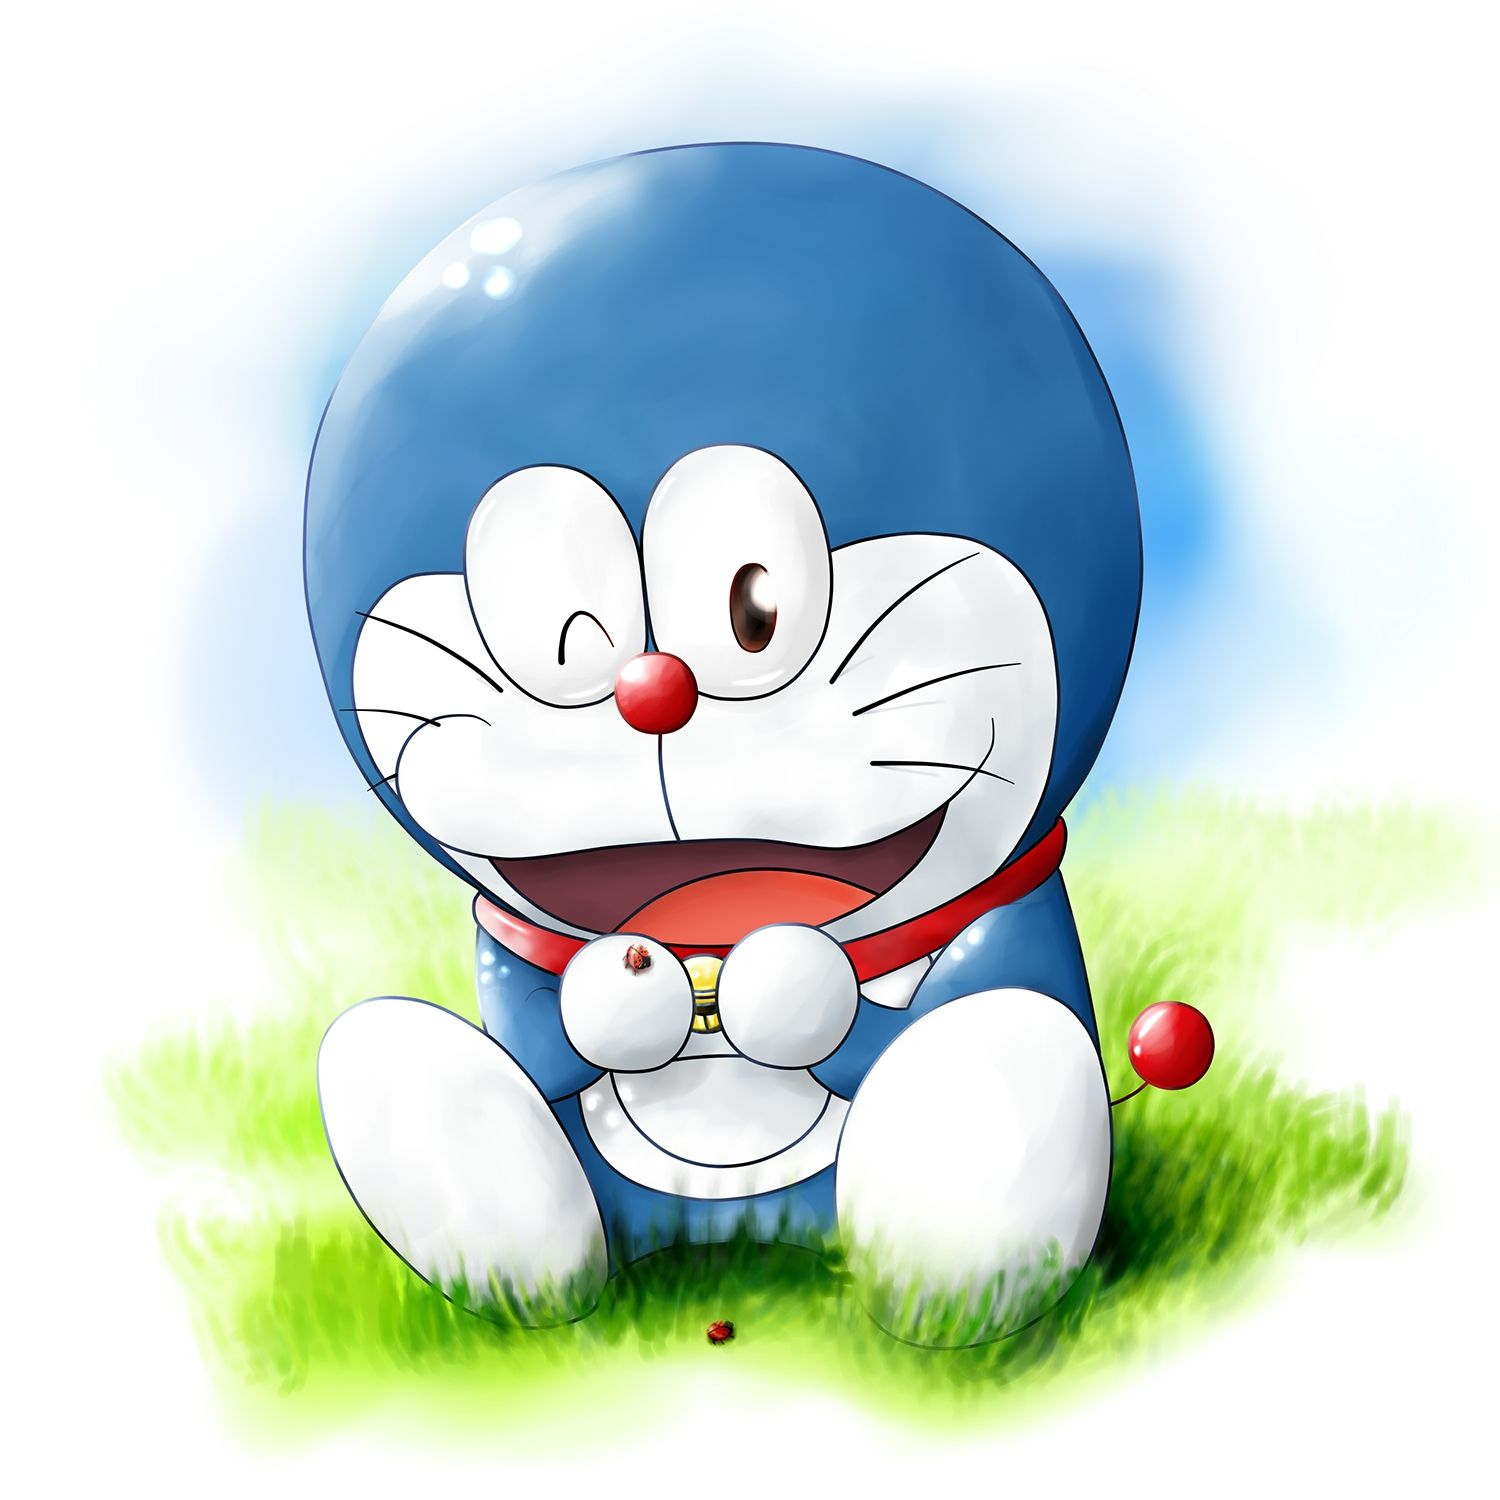 59 Gambar Dp Bbm Doraemon Bergerak Lucu Terbaru Tekno Gadget Doraemon Wallpapers Cartoon Wallpaper Hd Cartoon Wallpaper